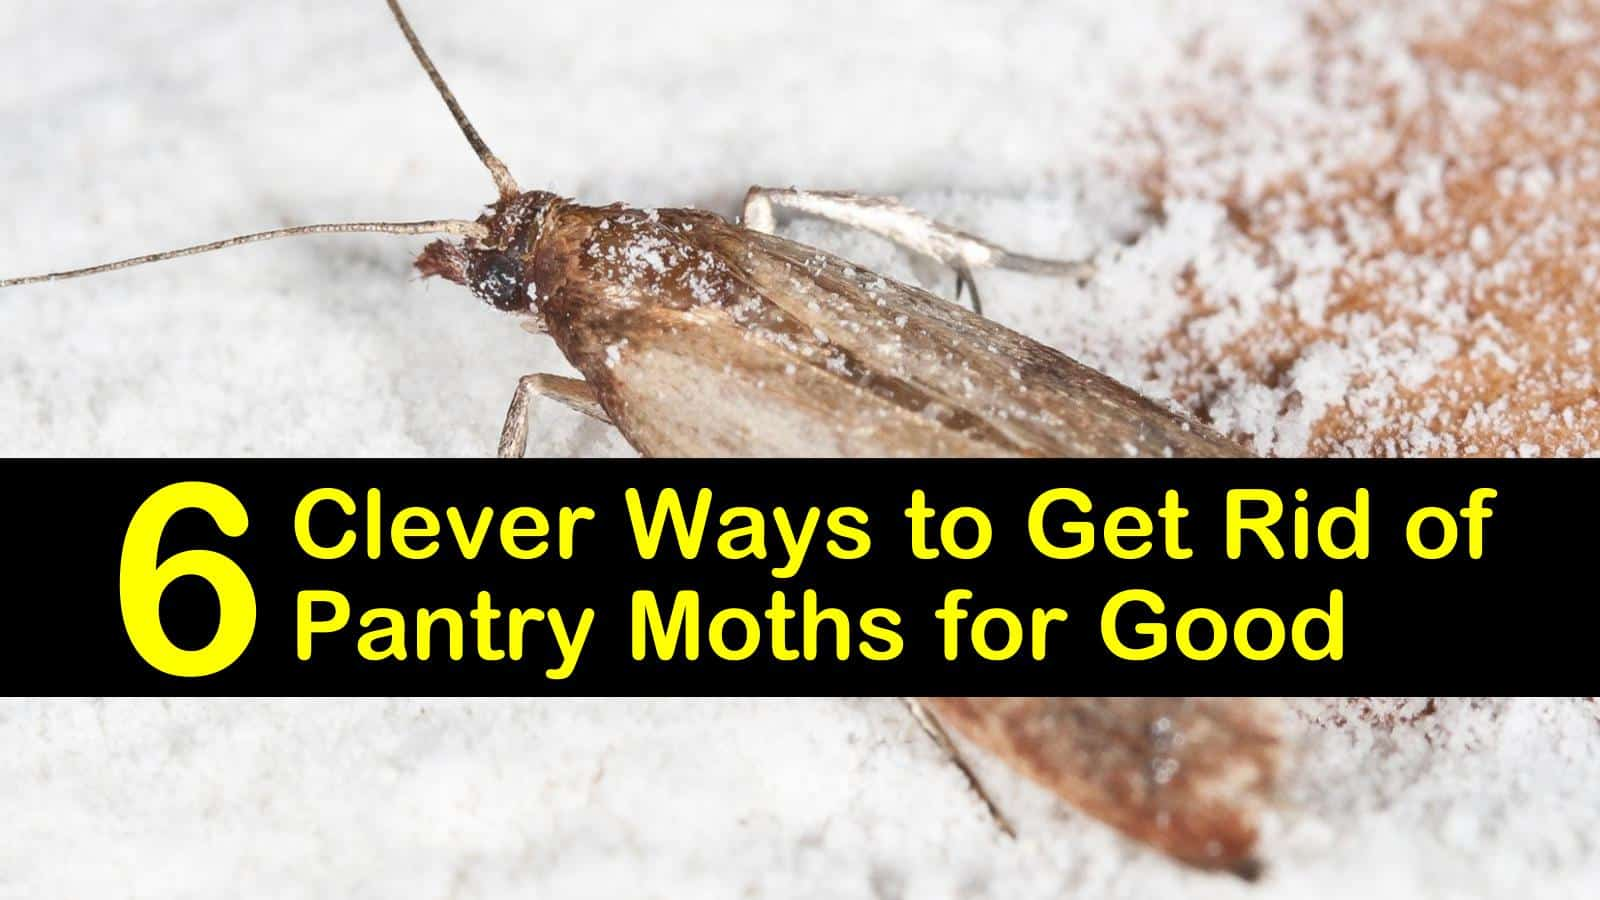 6 Clever Ways To Get Rid Of Pantry Moths For Good